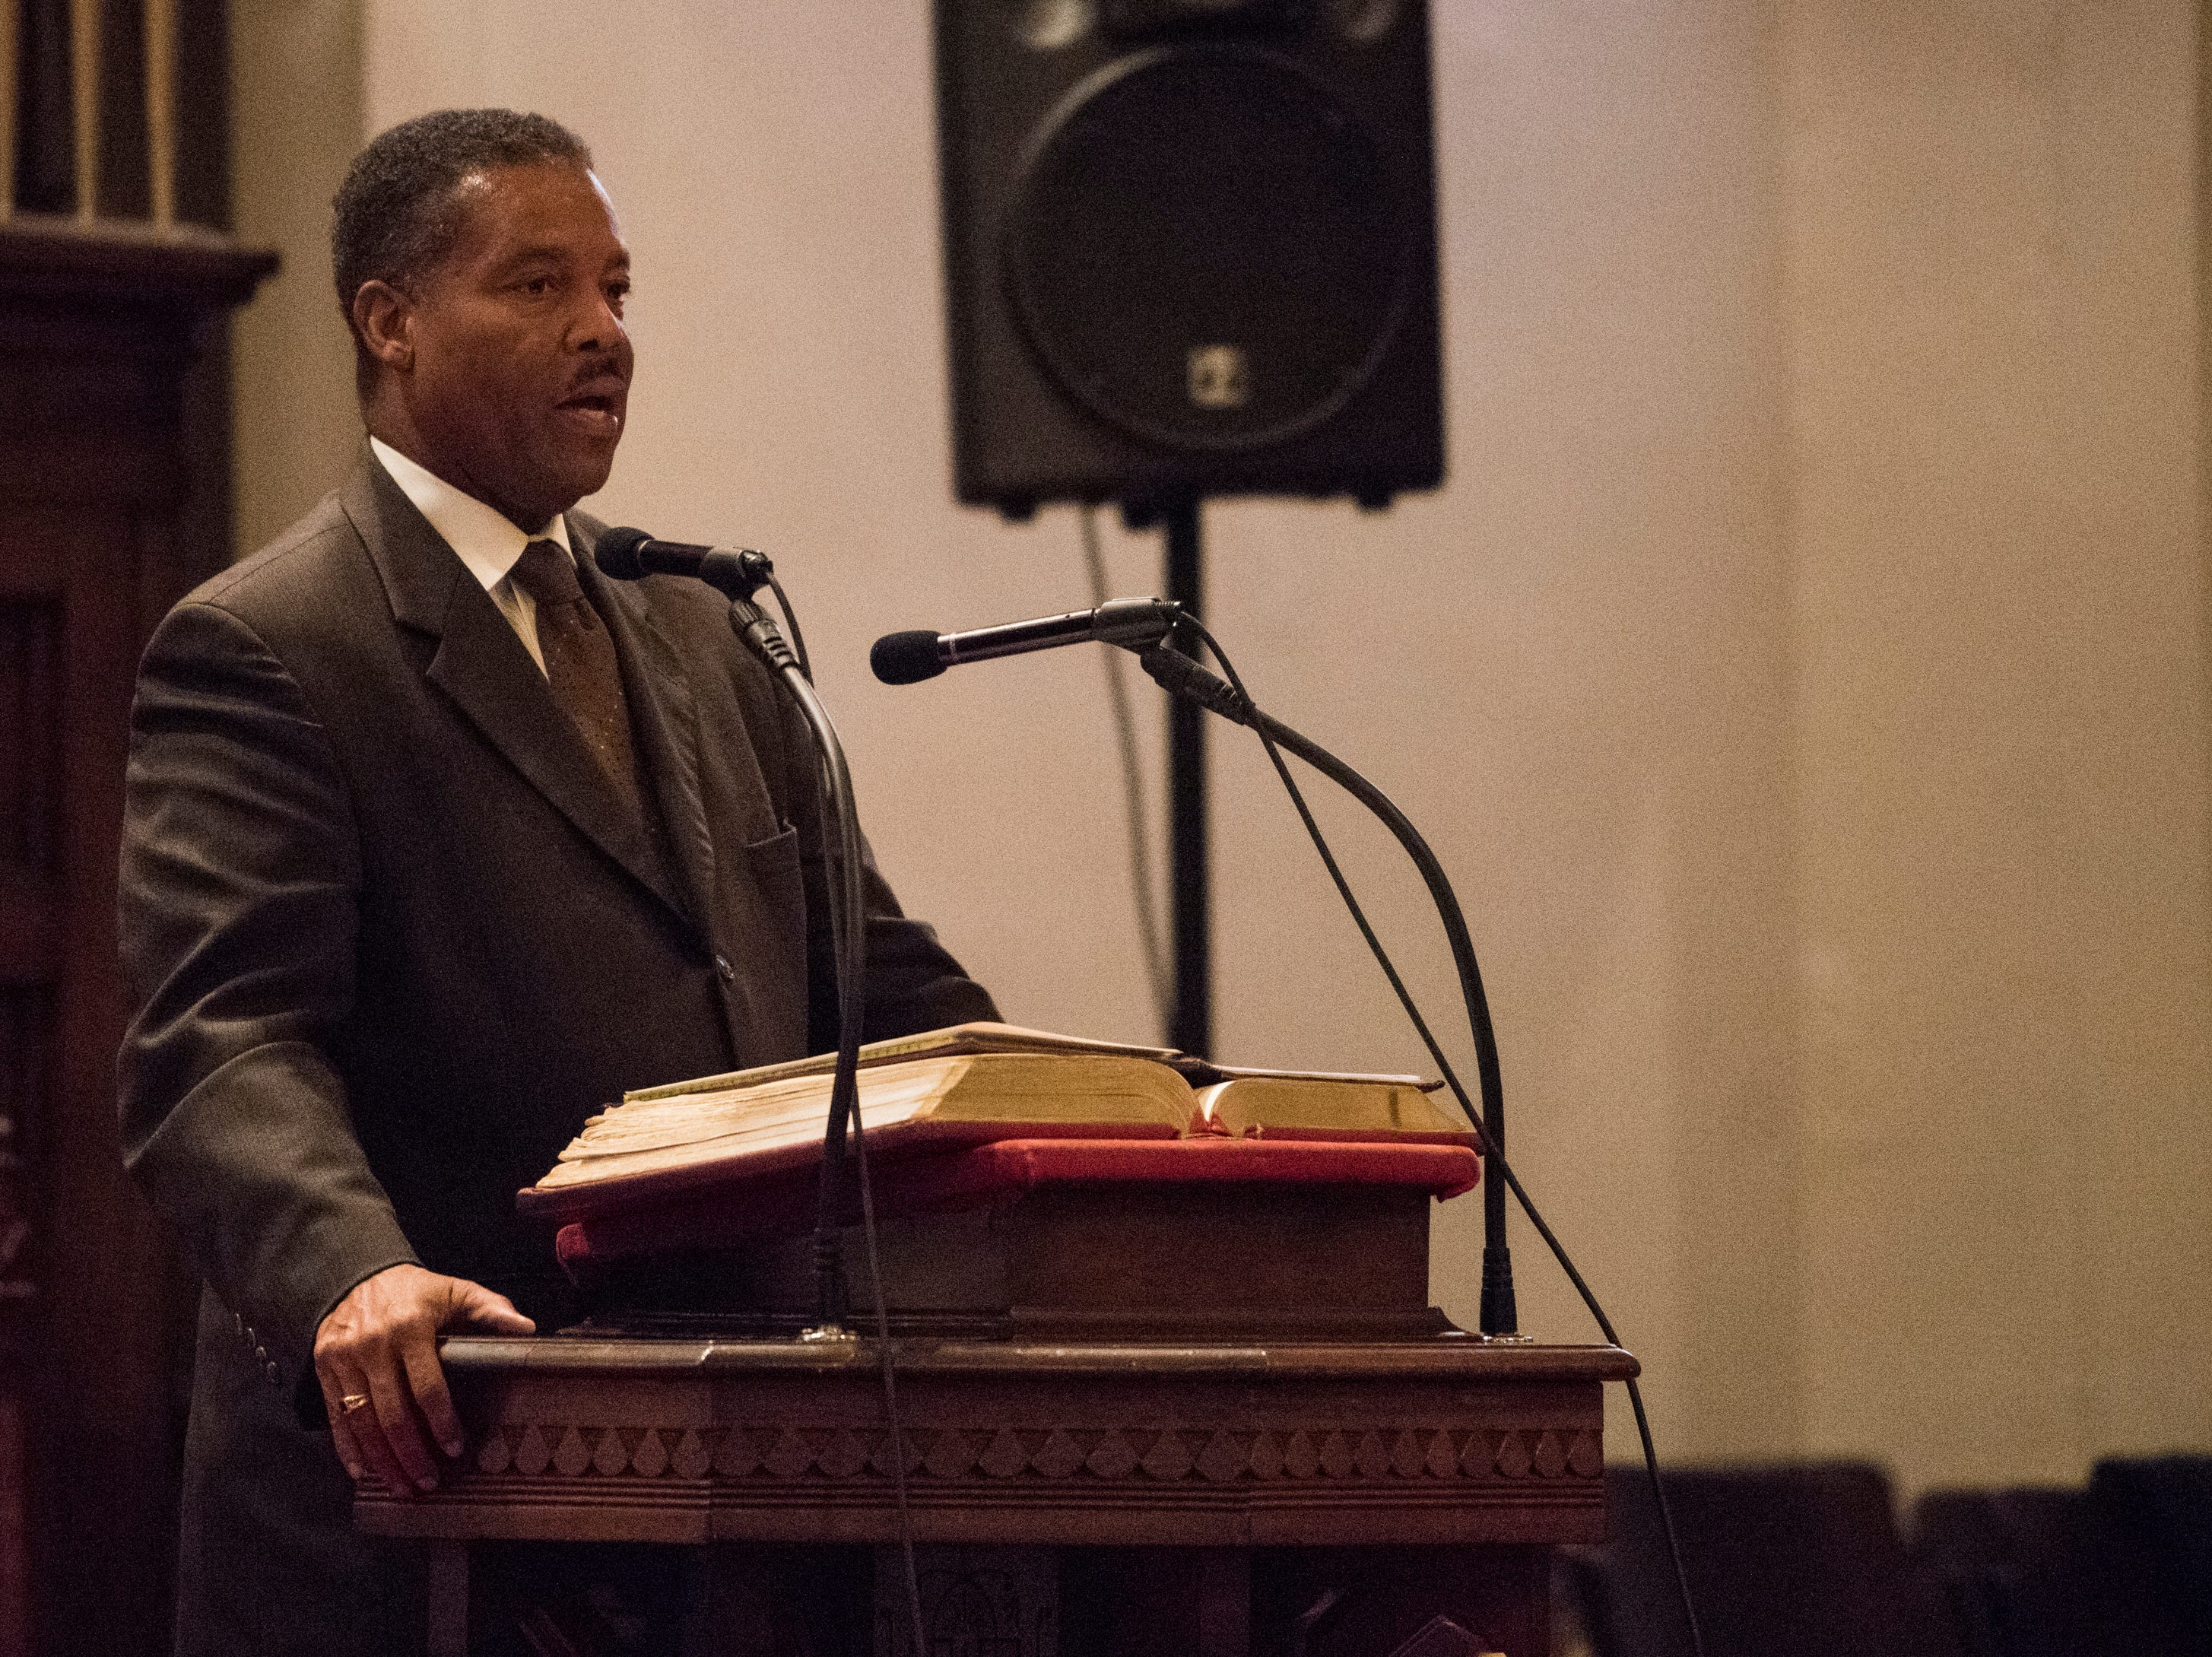 Rev. Cromwell Handy speaks during 63rd anniversary of the Montgomery bus boycott ceremony at First Baptist Church in Montgomery, Ala., on Monday, Dec. 3, 2018.